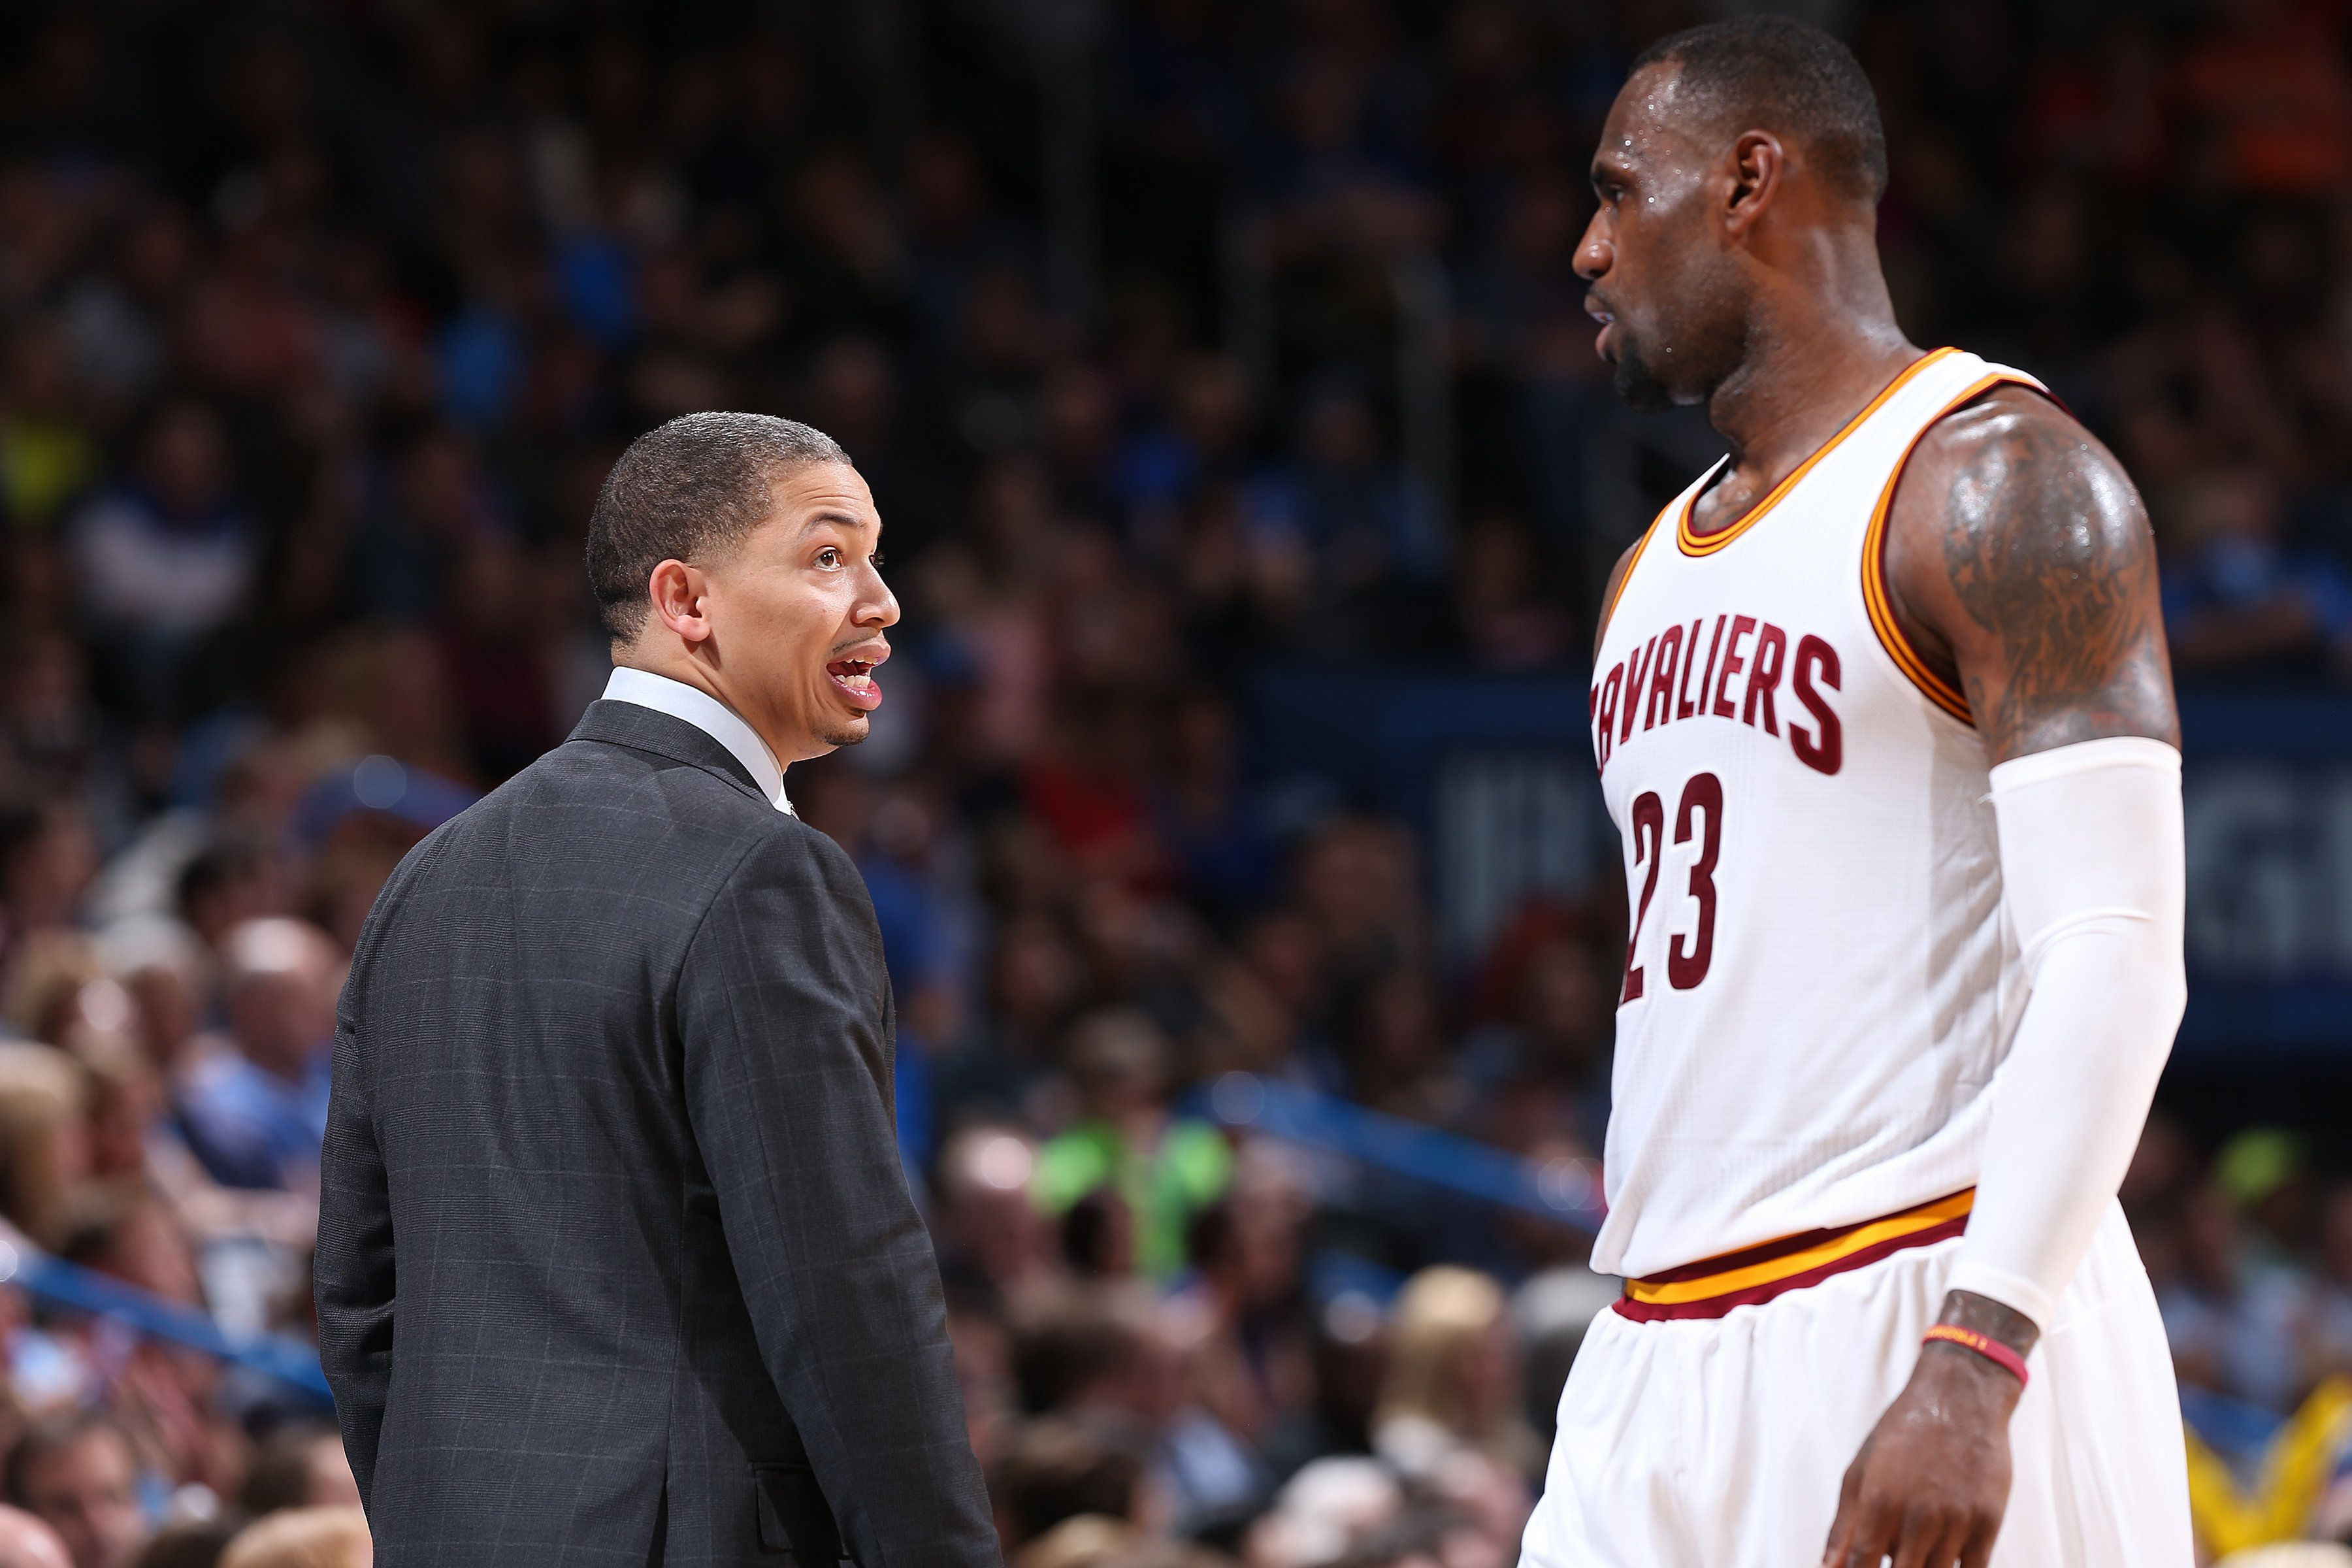 New Cleveland head coach Tyronn Lue and LeBron James have hardly been a perfect match thus far.